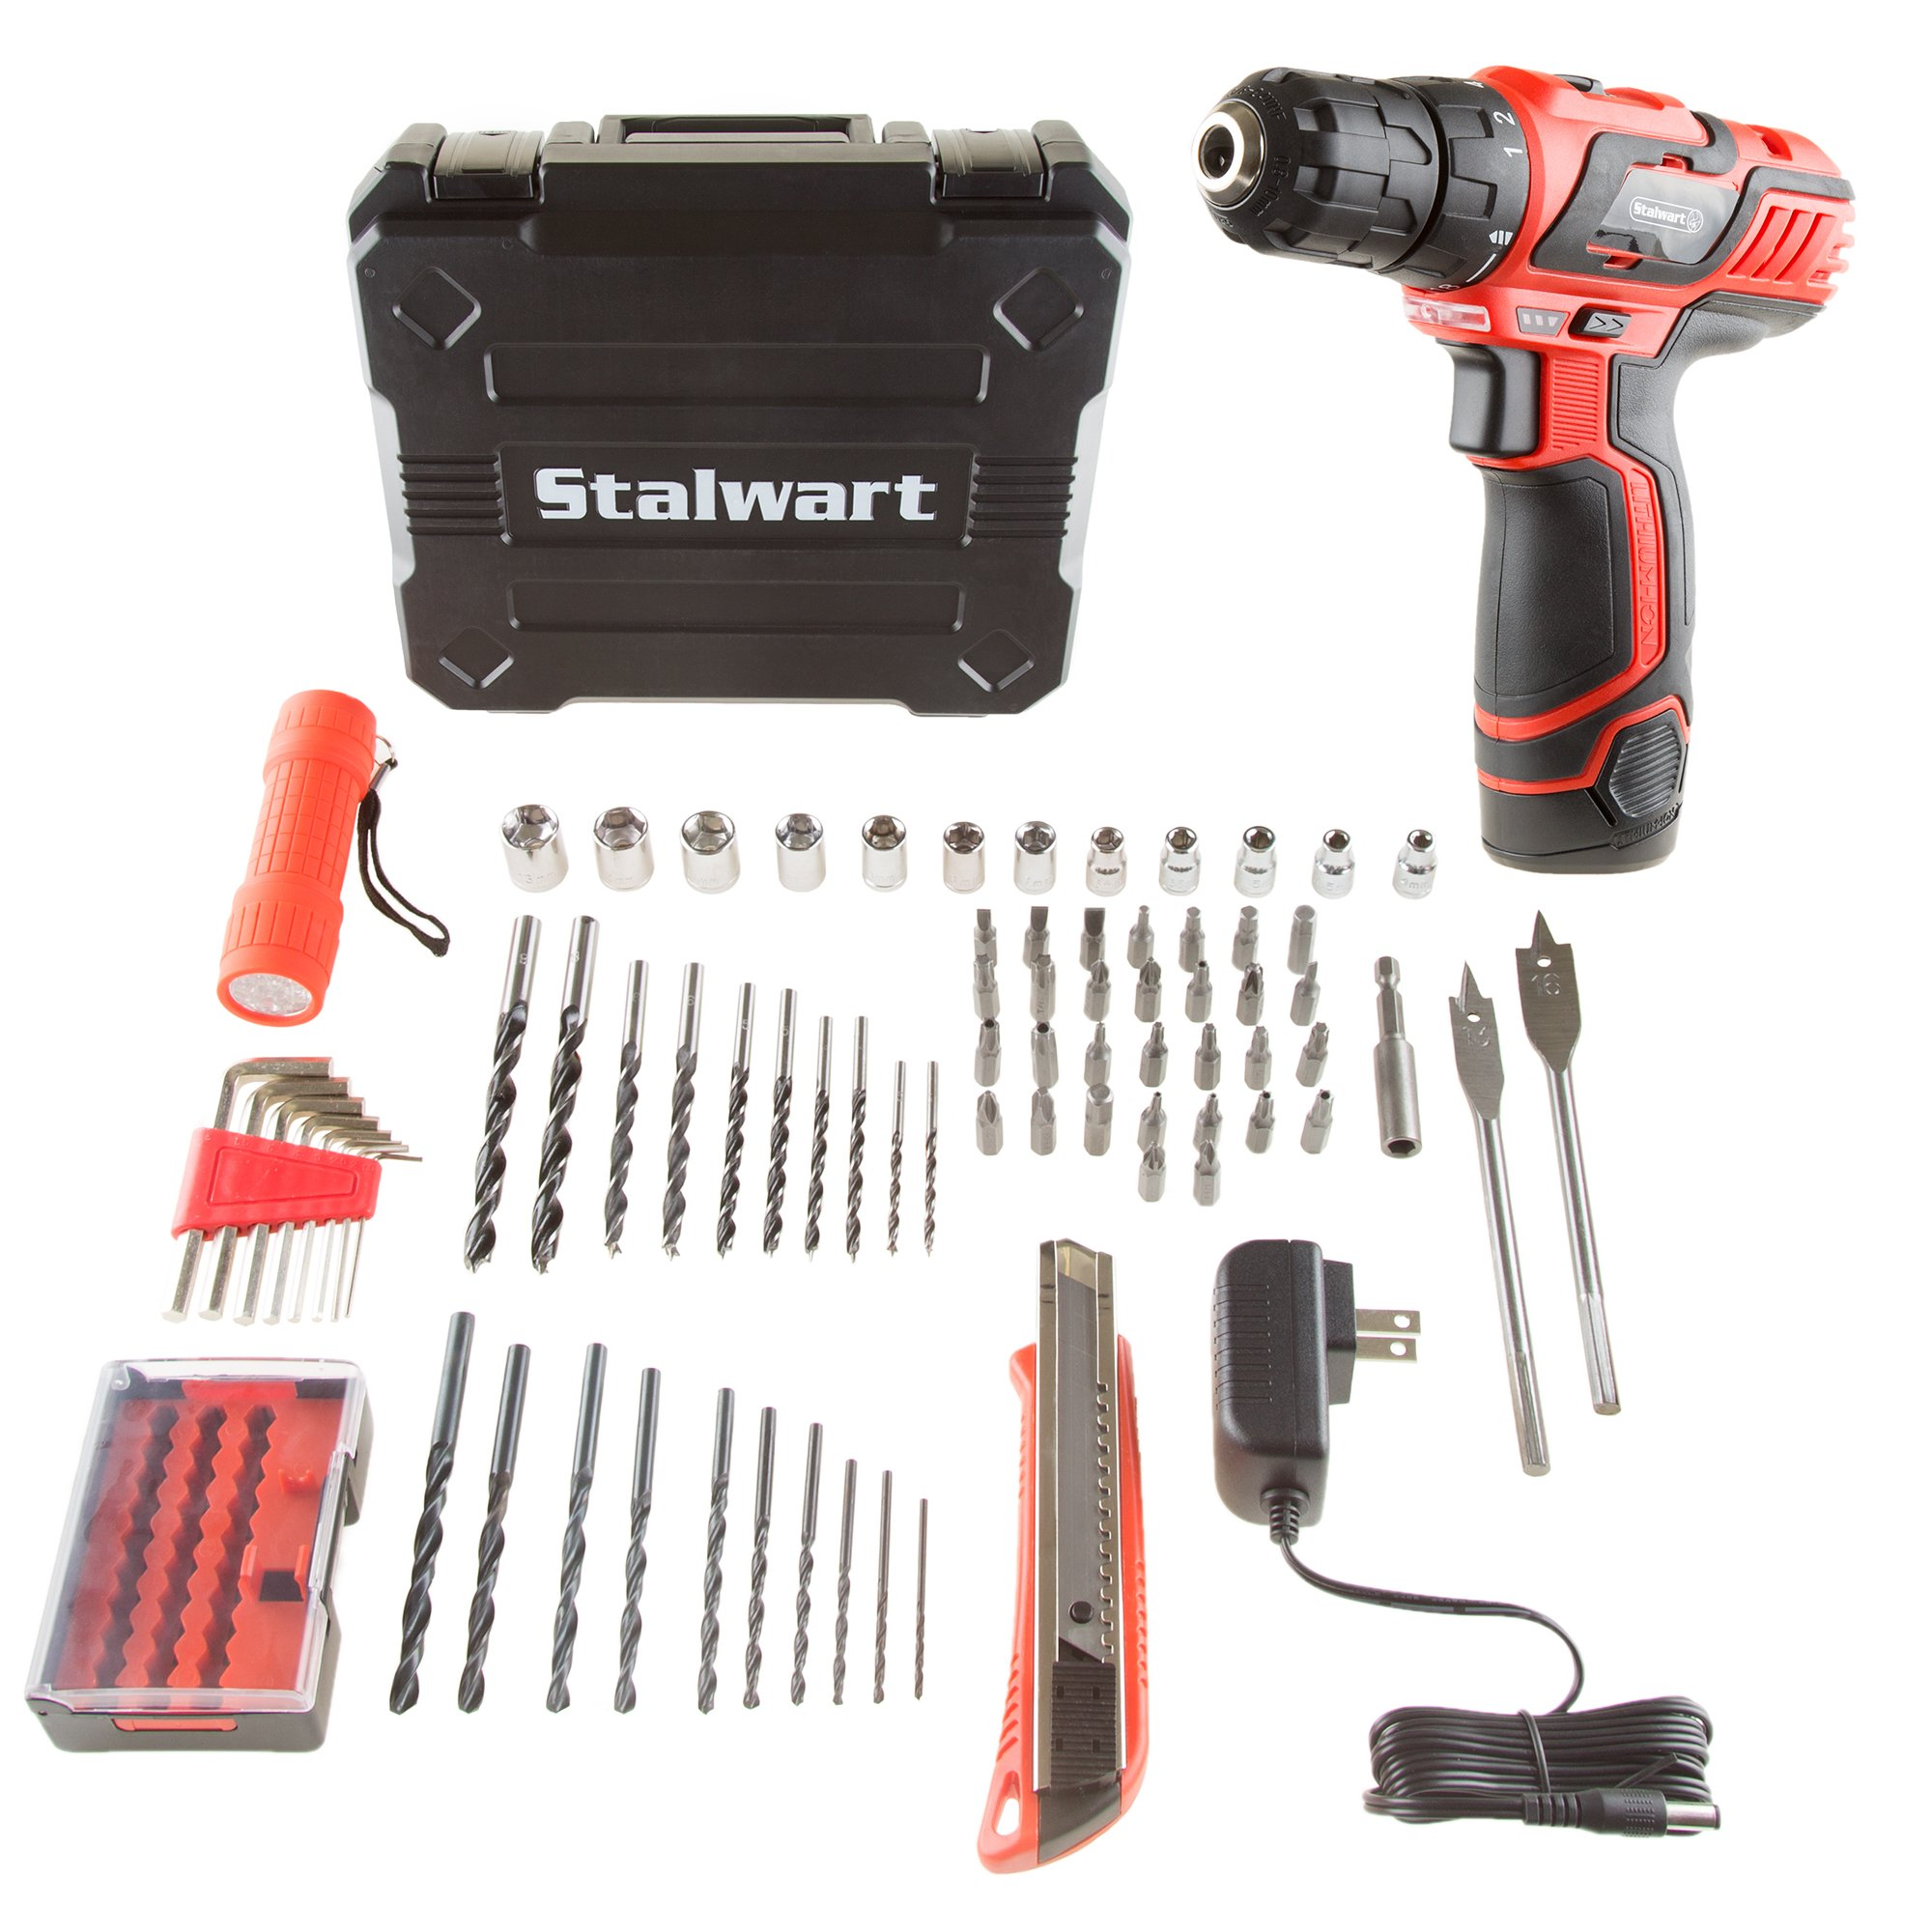 Stalwart 75-PT1003 12V Lithium Ion 75 Pc 2 Speed Drill & Accessory Tool Set, by Stalwart (Image #4)